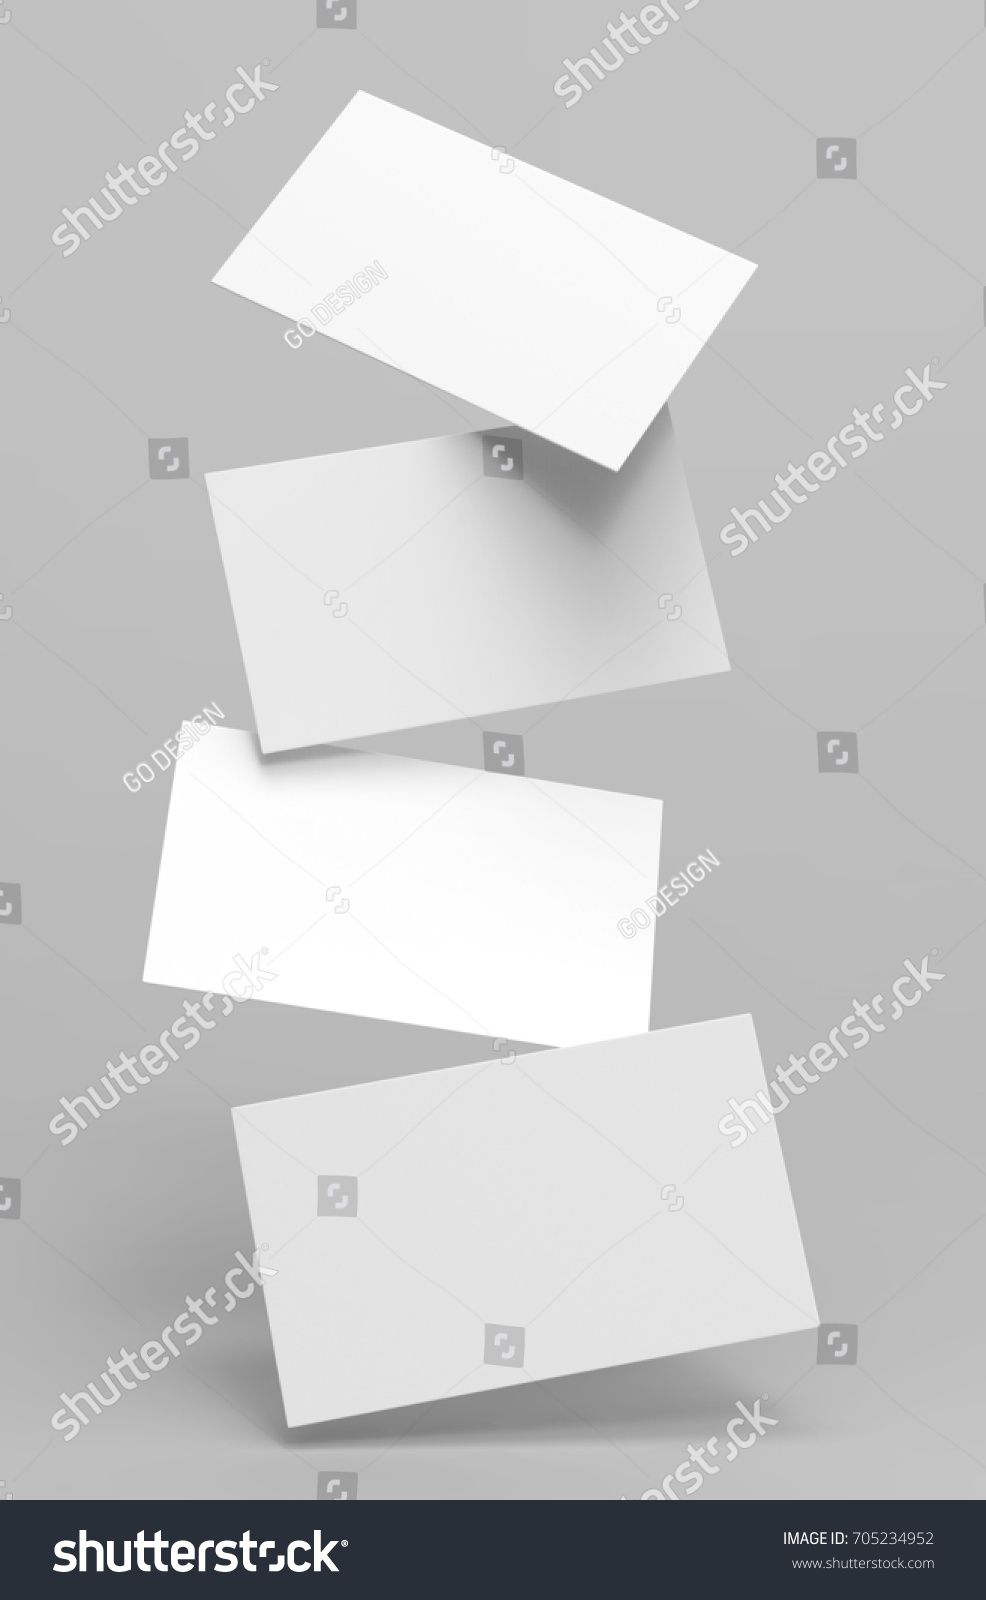 Blank White Business Cards Or Visiting Card In The Air Template 3d